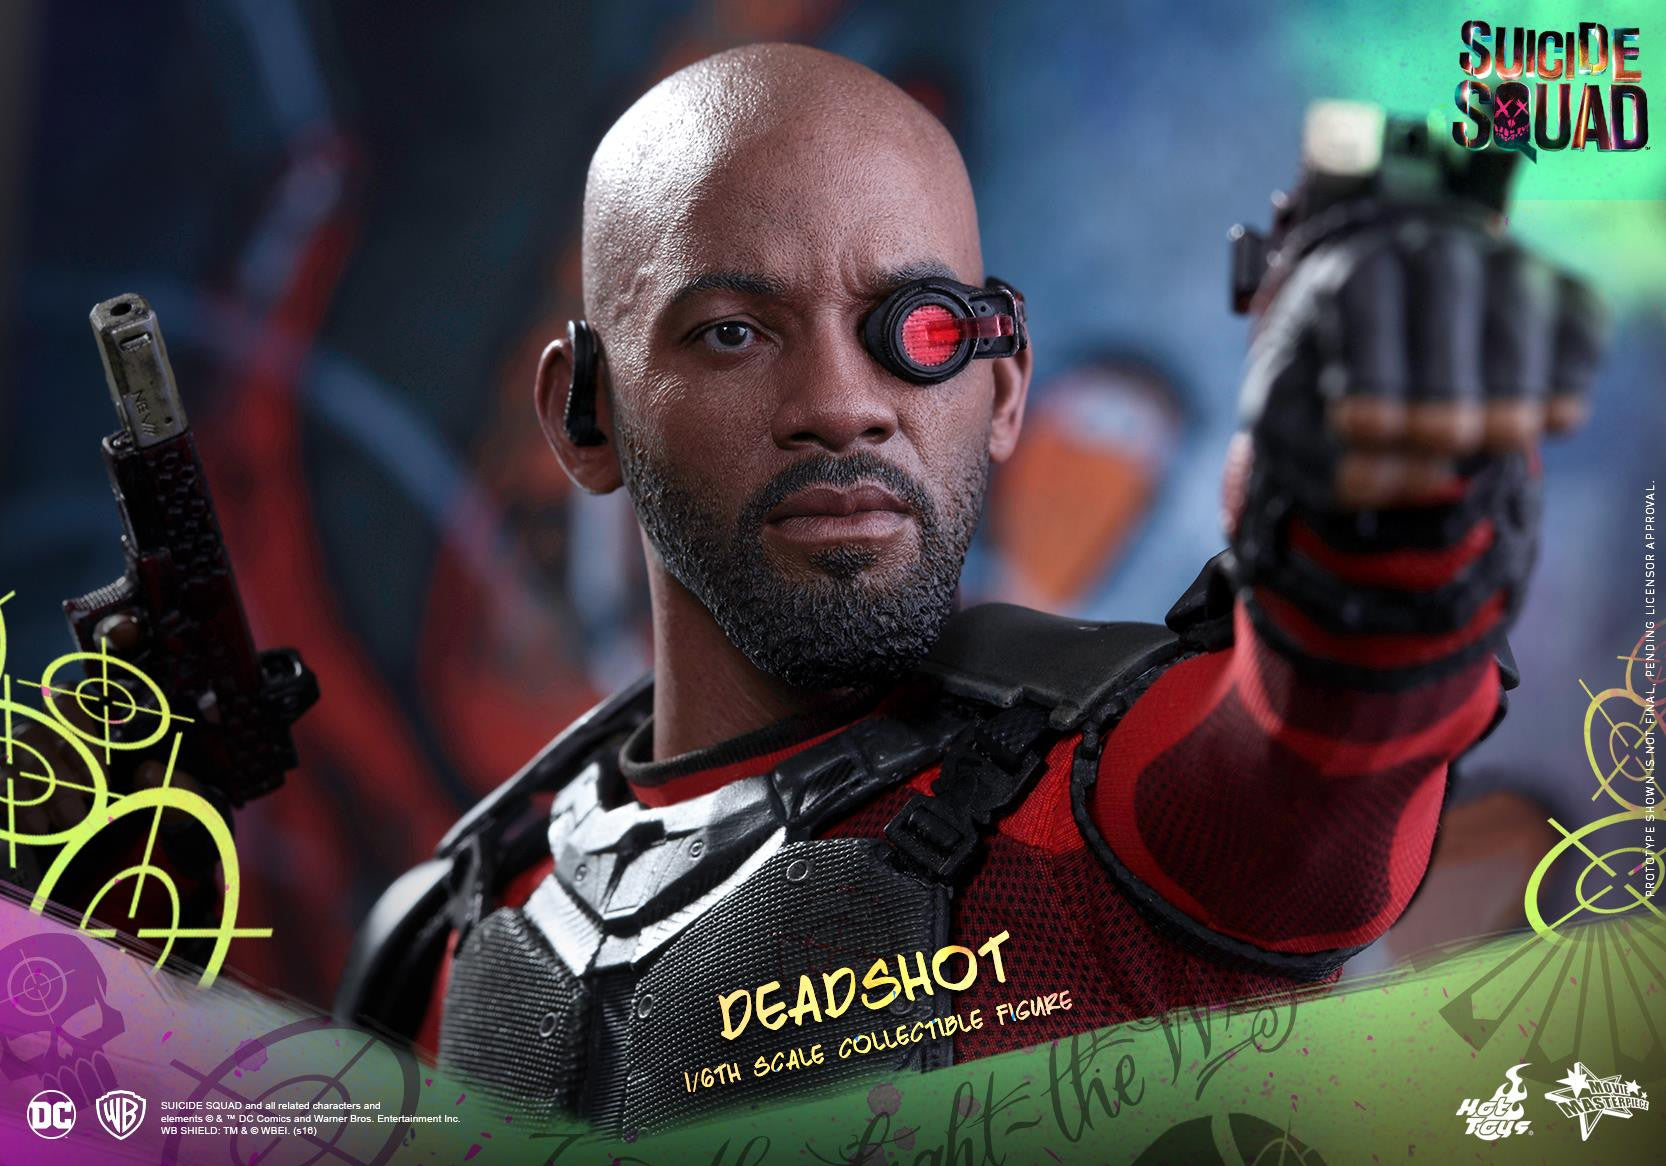 Hot Toys - MMS381 - Suicide Squad - Deadshot (Normal Edition) - Marvelous Toys - 6